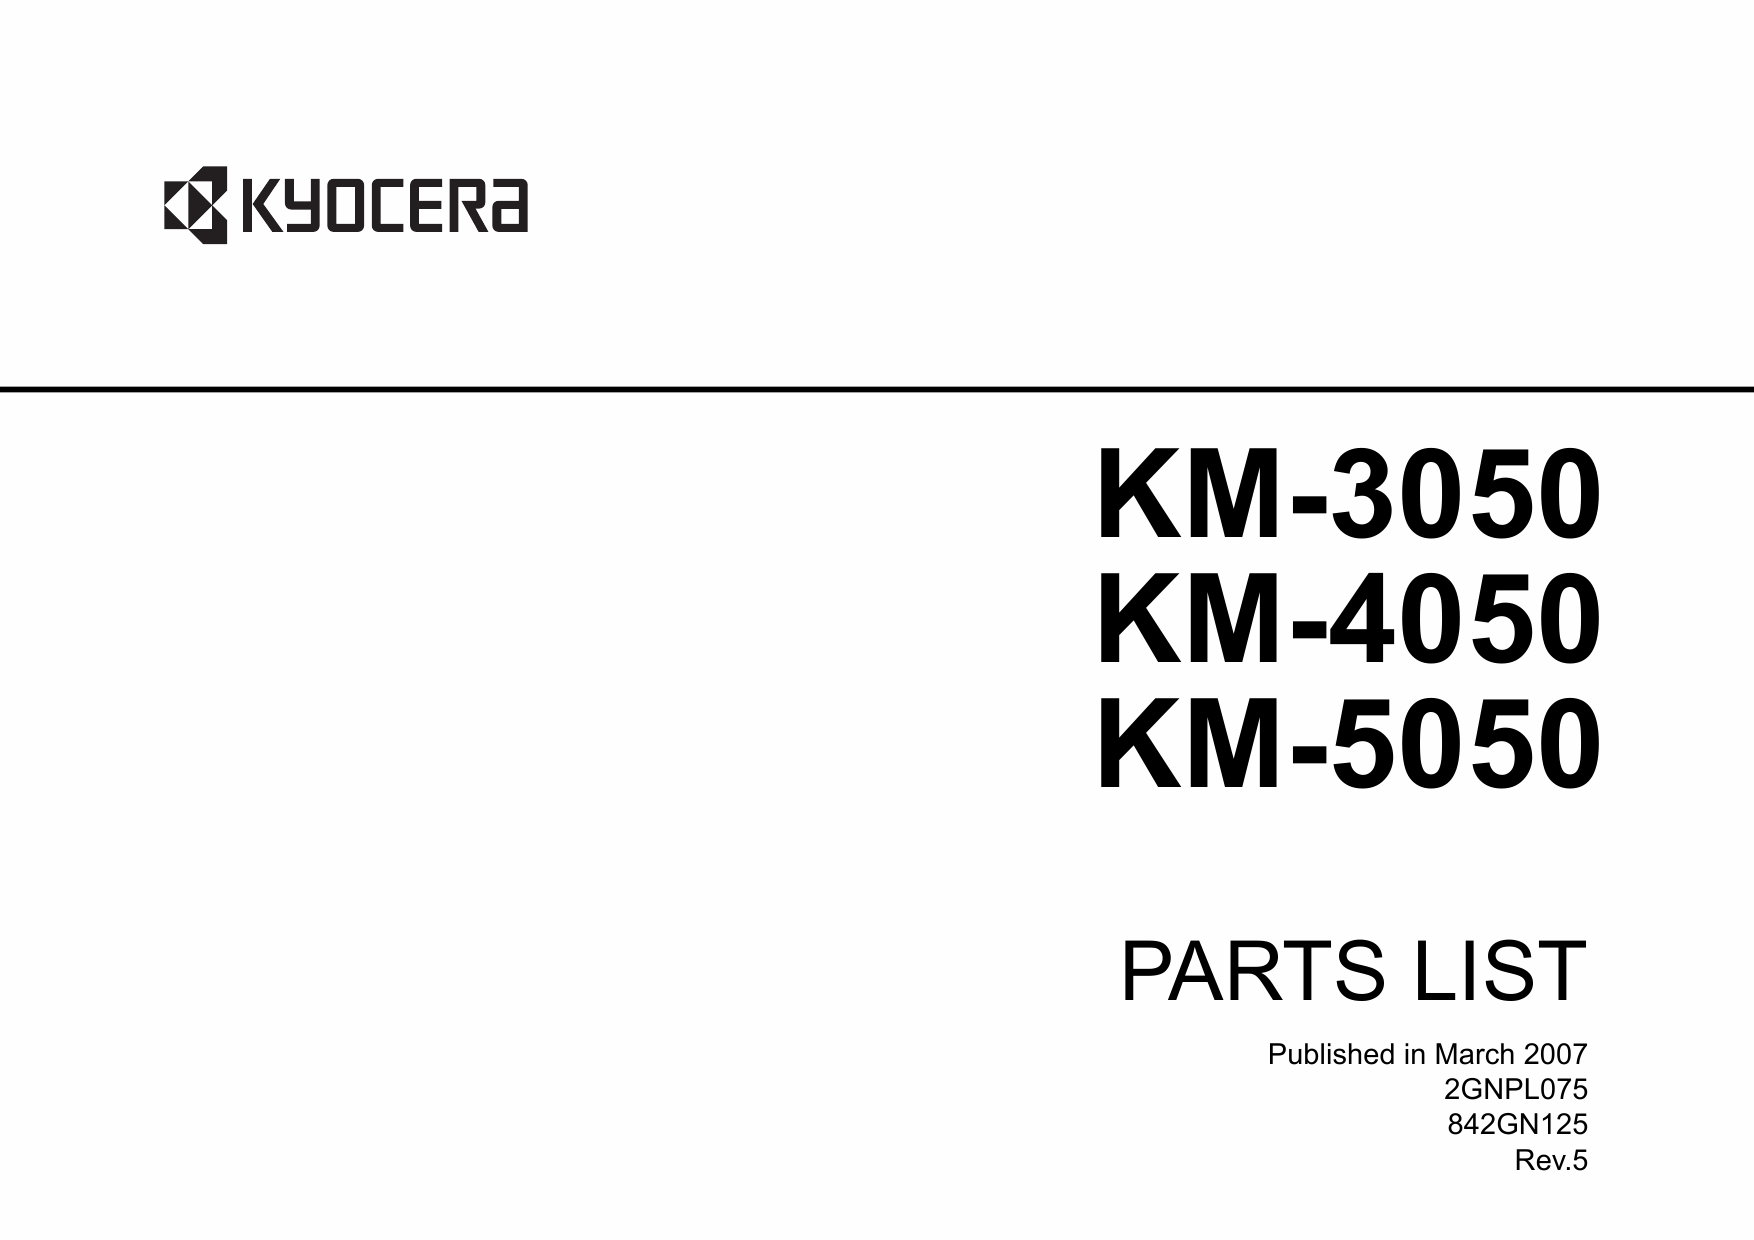 KYOCERA Copier KM-3050 4050 5050 Parts Manual-1